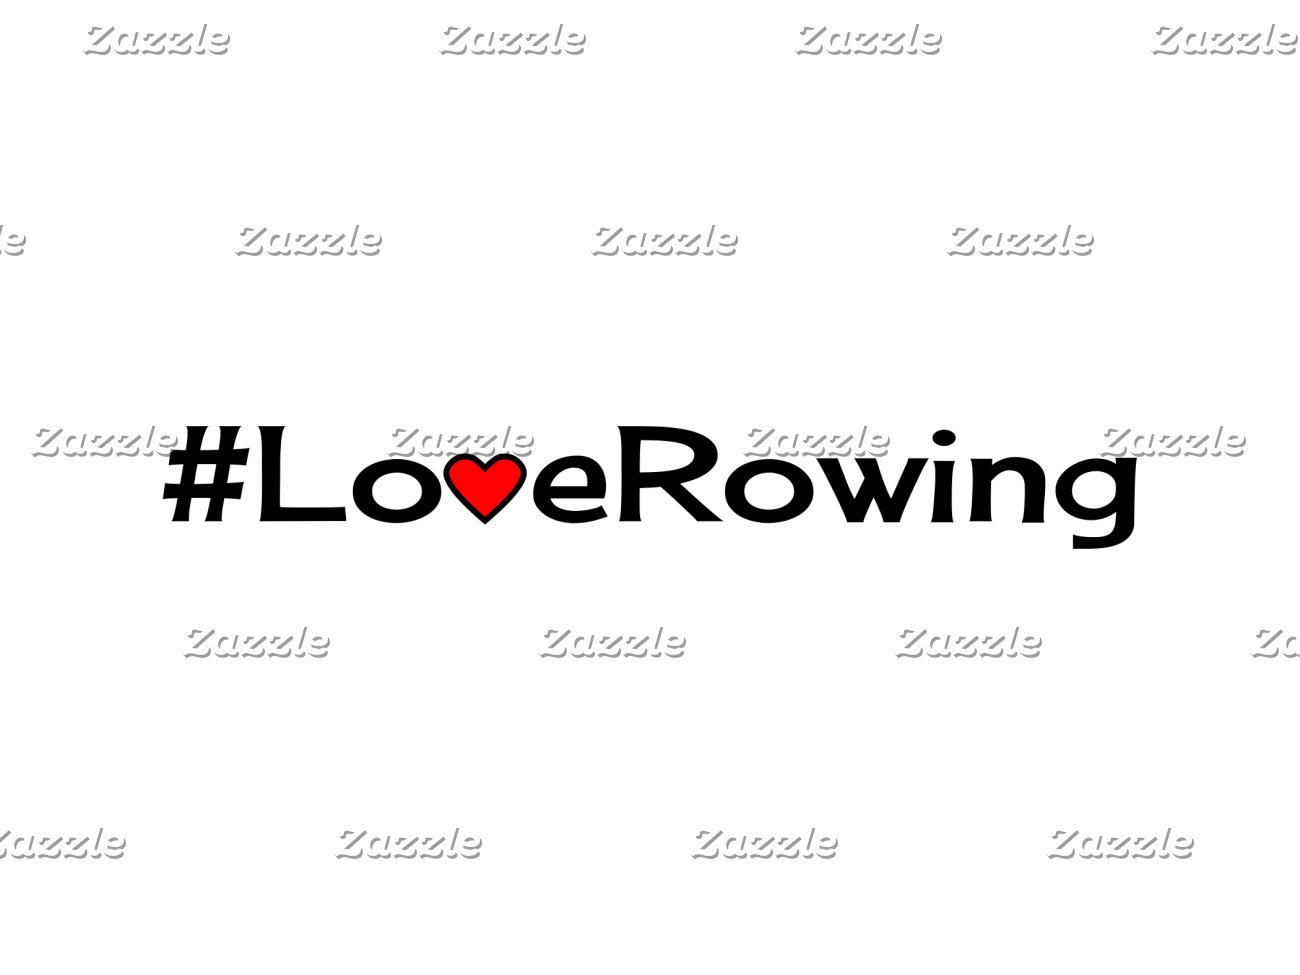 Love Rowing